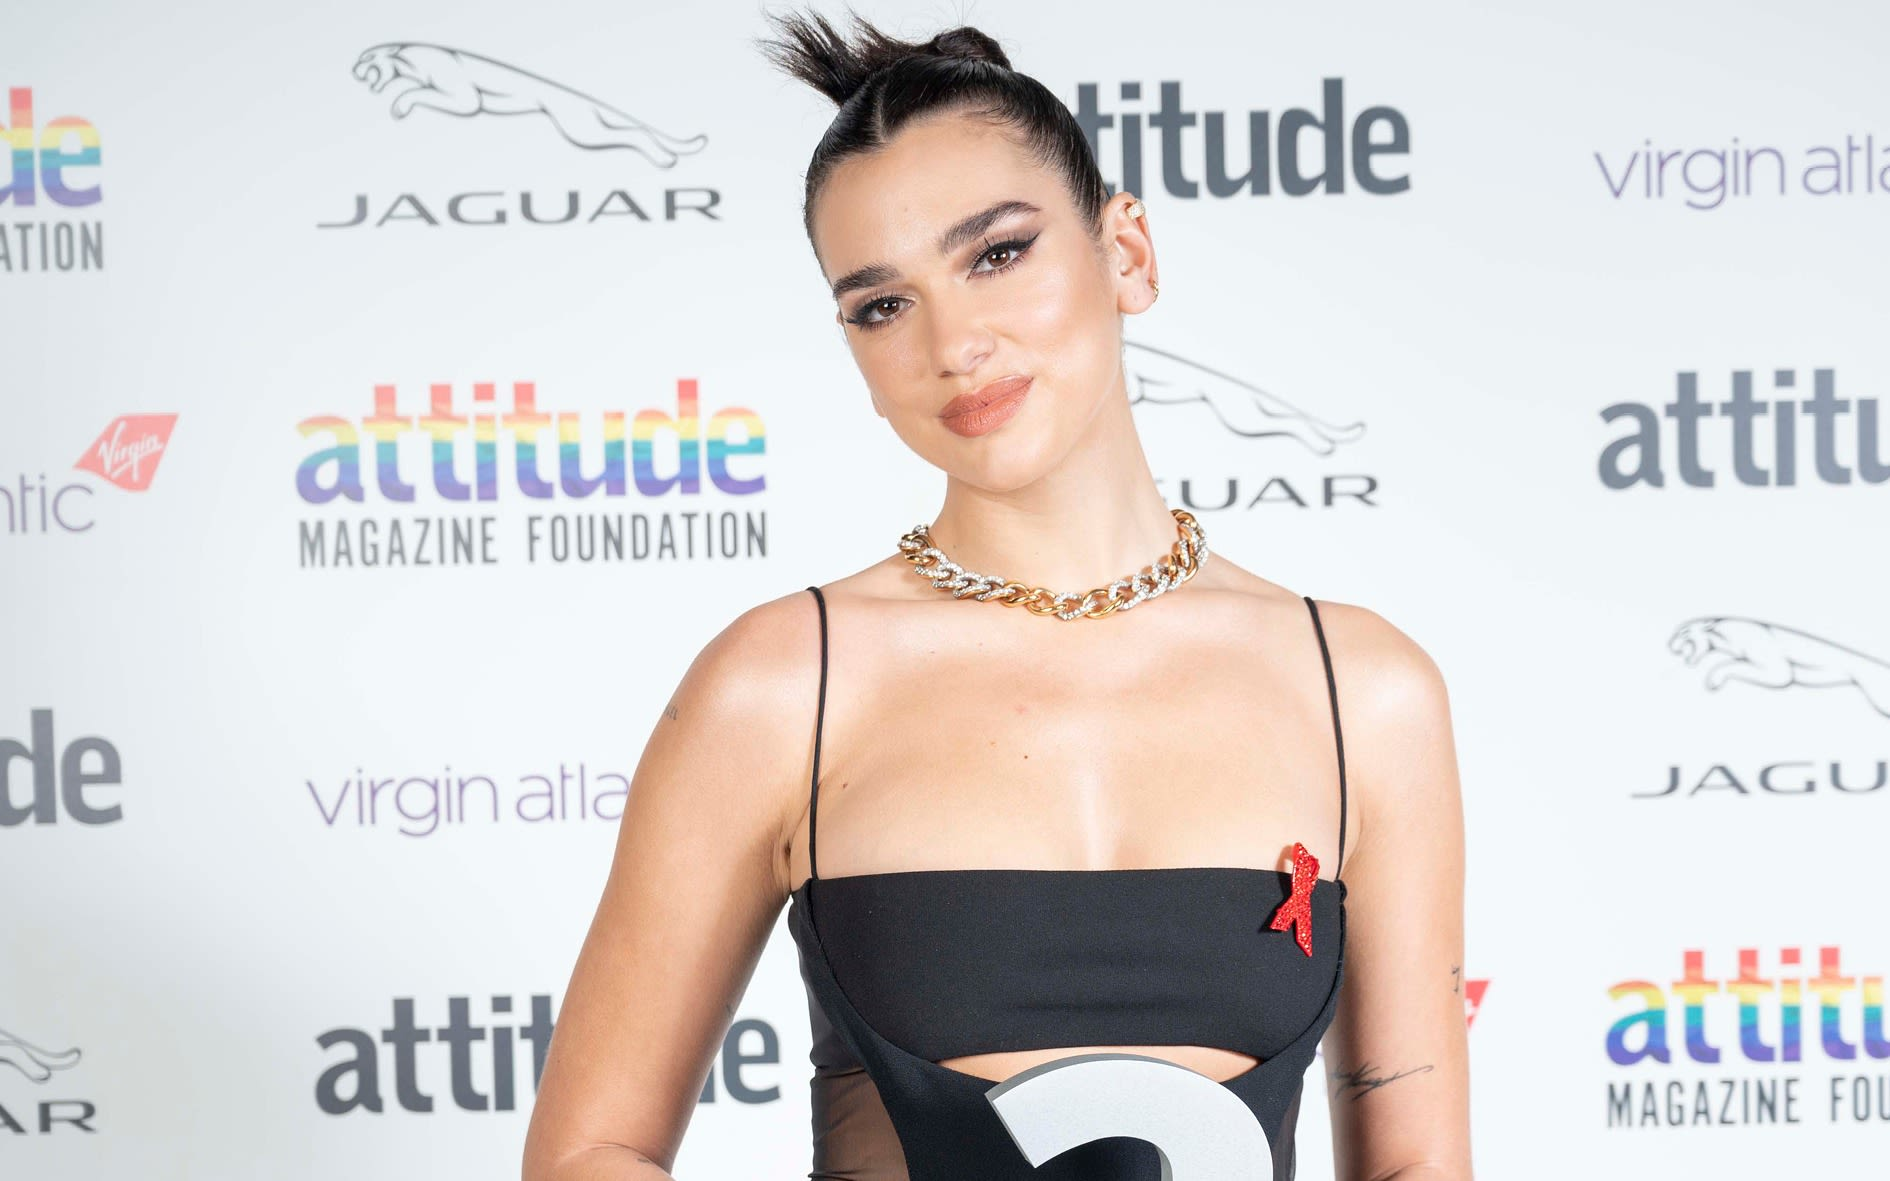 Dua Lipa at the Virgin Atlantic Attitude Awards 2020